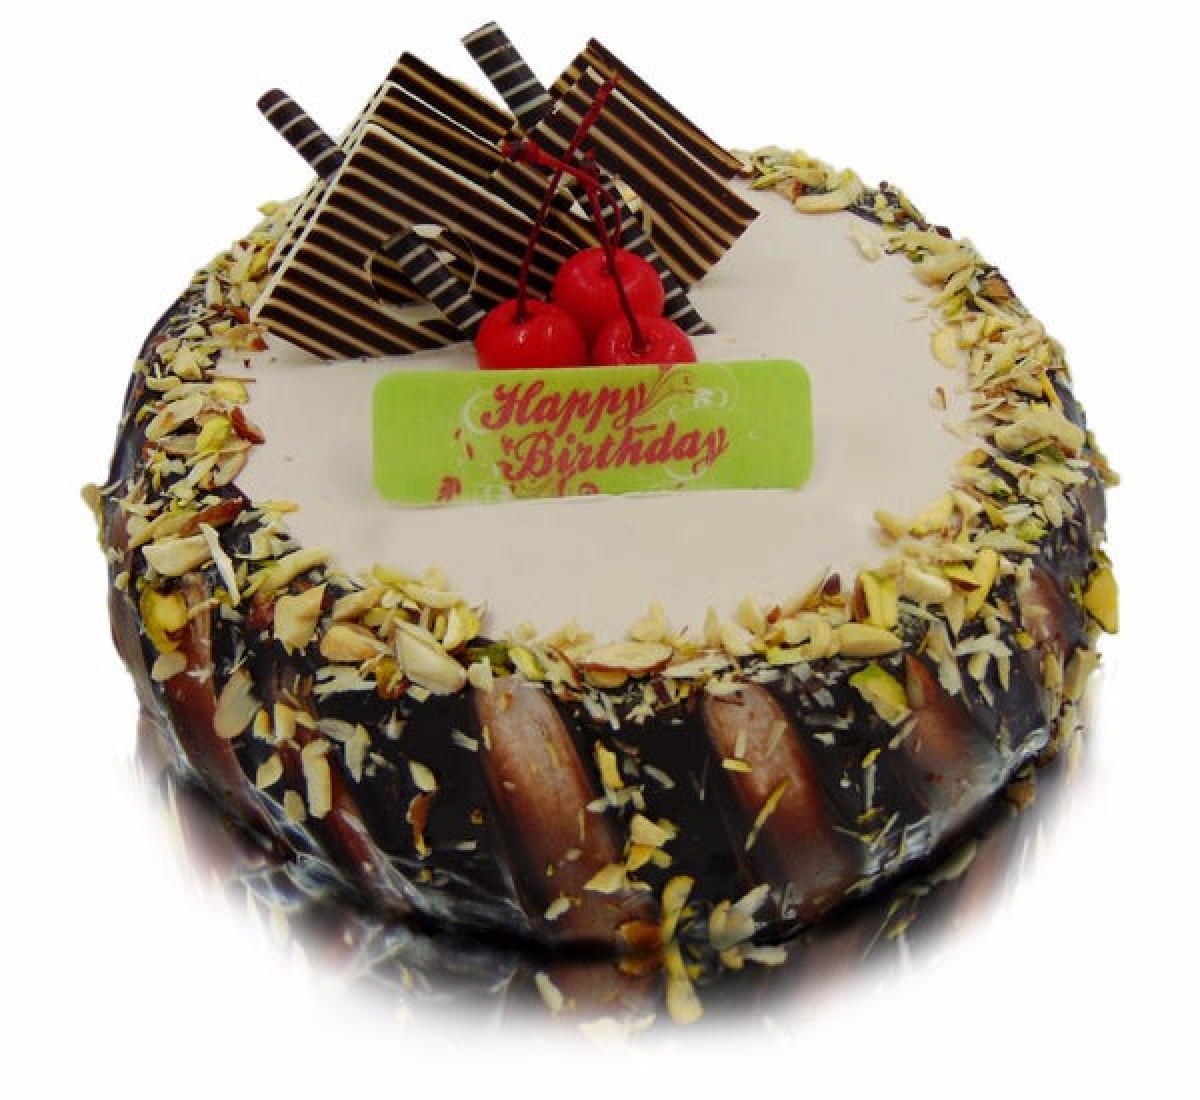 Online cake order online cake home delivery in coimbatore friend Home furniture online coimbatore